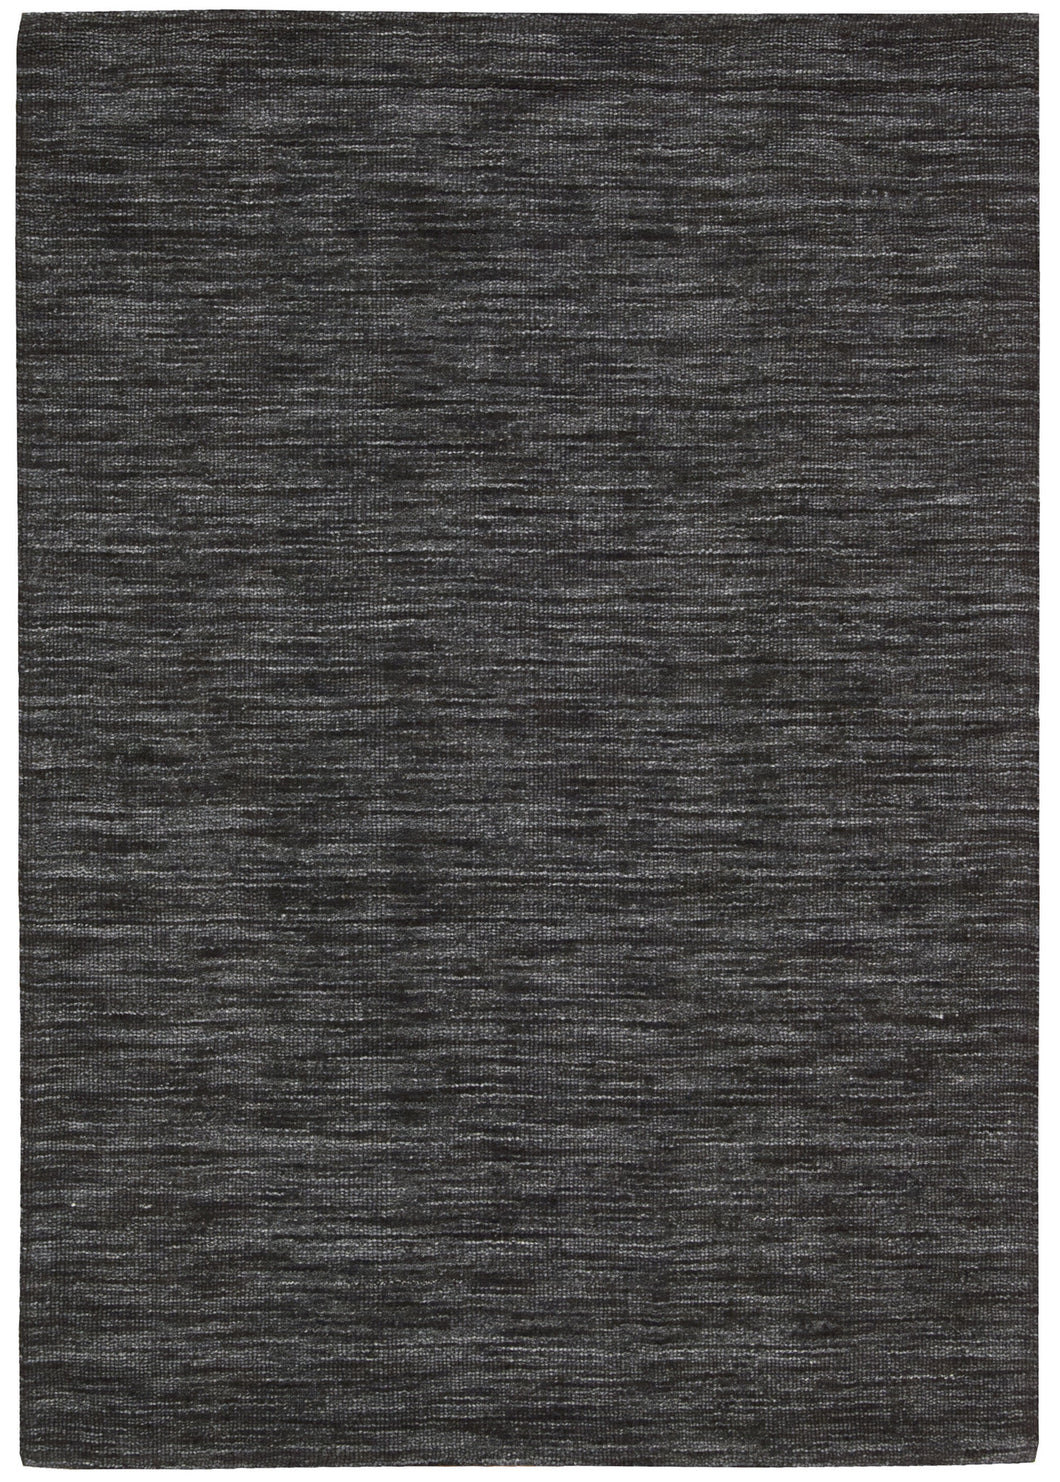 Waverly Grand Suite Char Area Rug By Nourison WGS01 CHAR